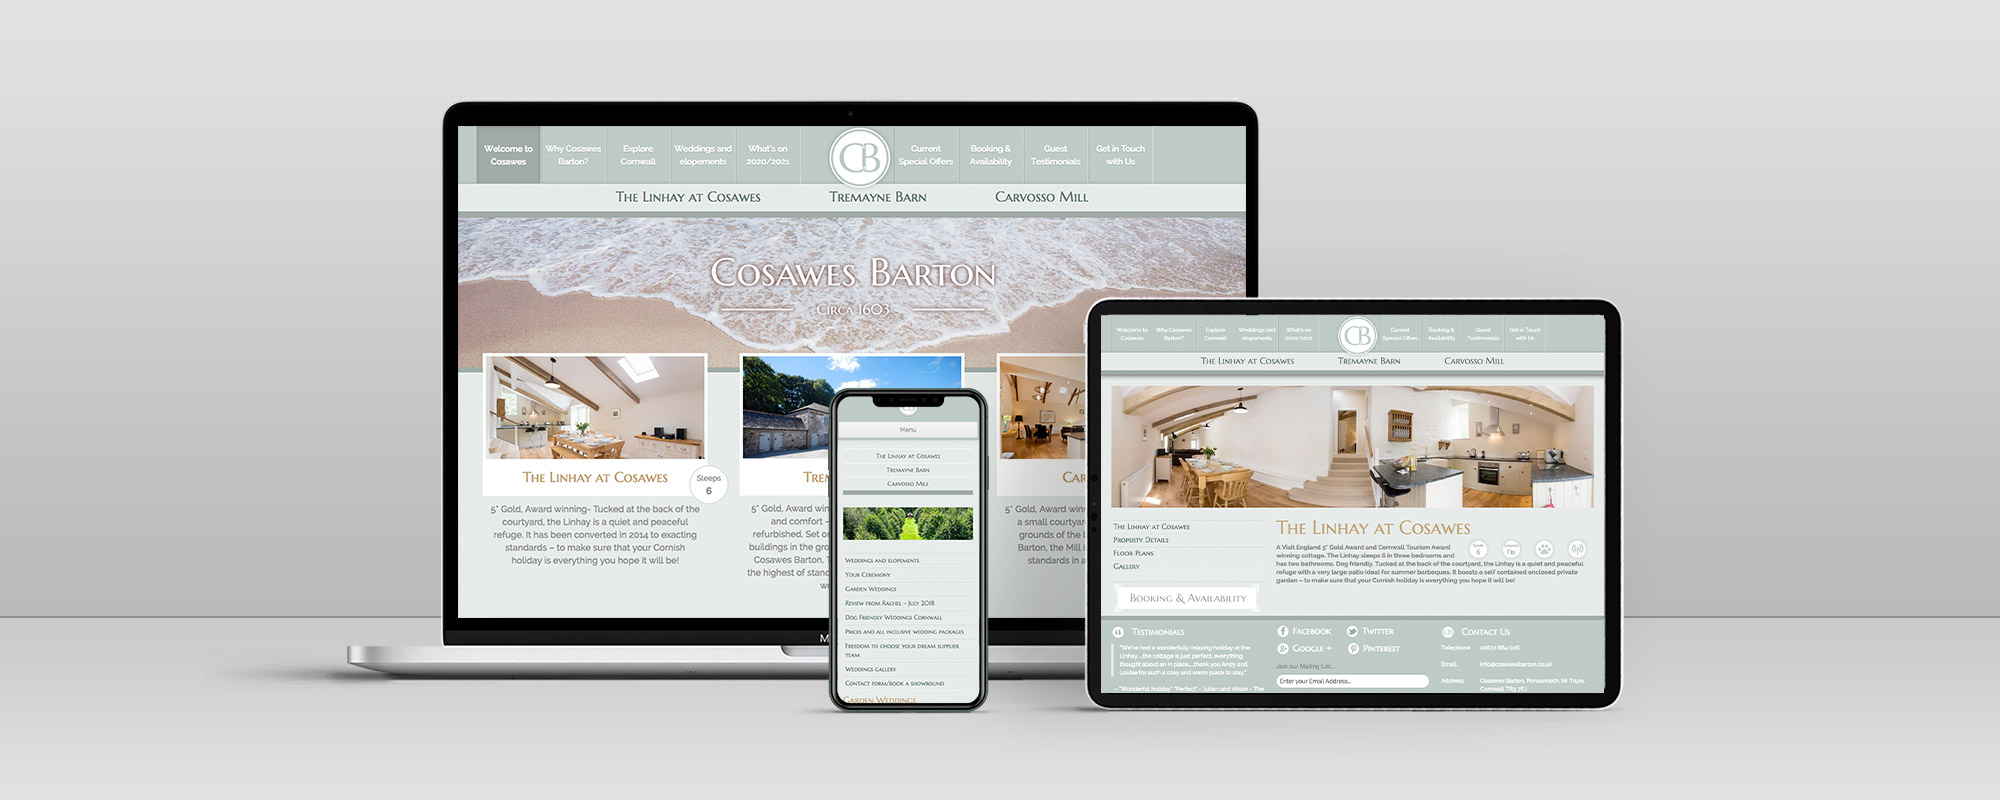 Cosawes Barton Wordpress Website Design on 3 Devices